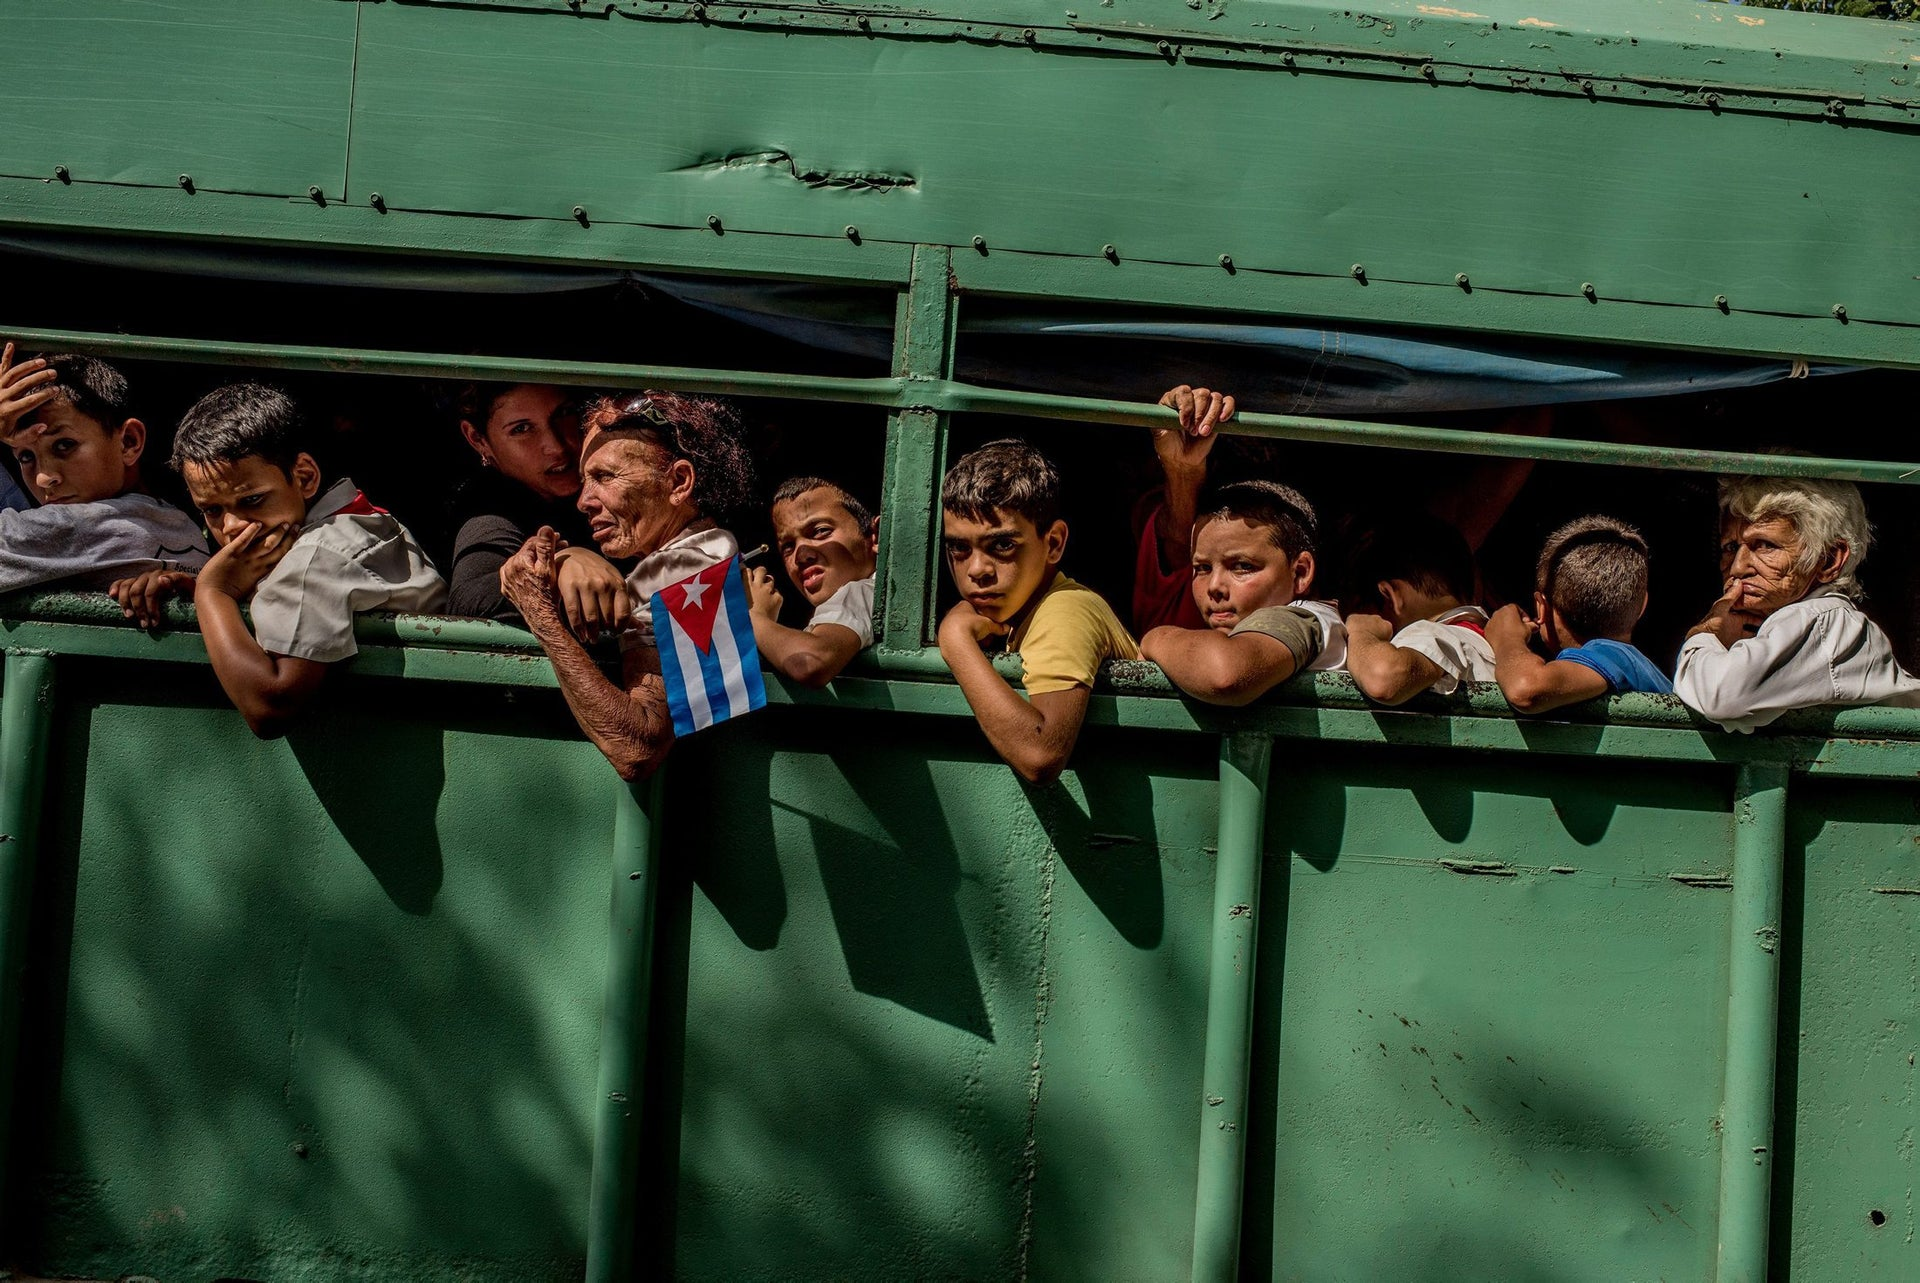 Daily Life, first prize stories - Trucks carried students home after the carriage carrying Fidel's ashes passed in Las Tunas Province, Cuba. Cuba declared nine days of mourning after Fidel Castro's death, a period that culminated with his funeral.